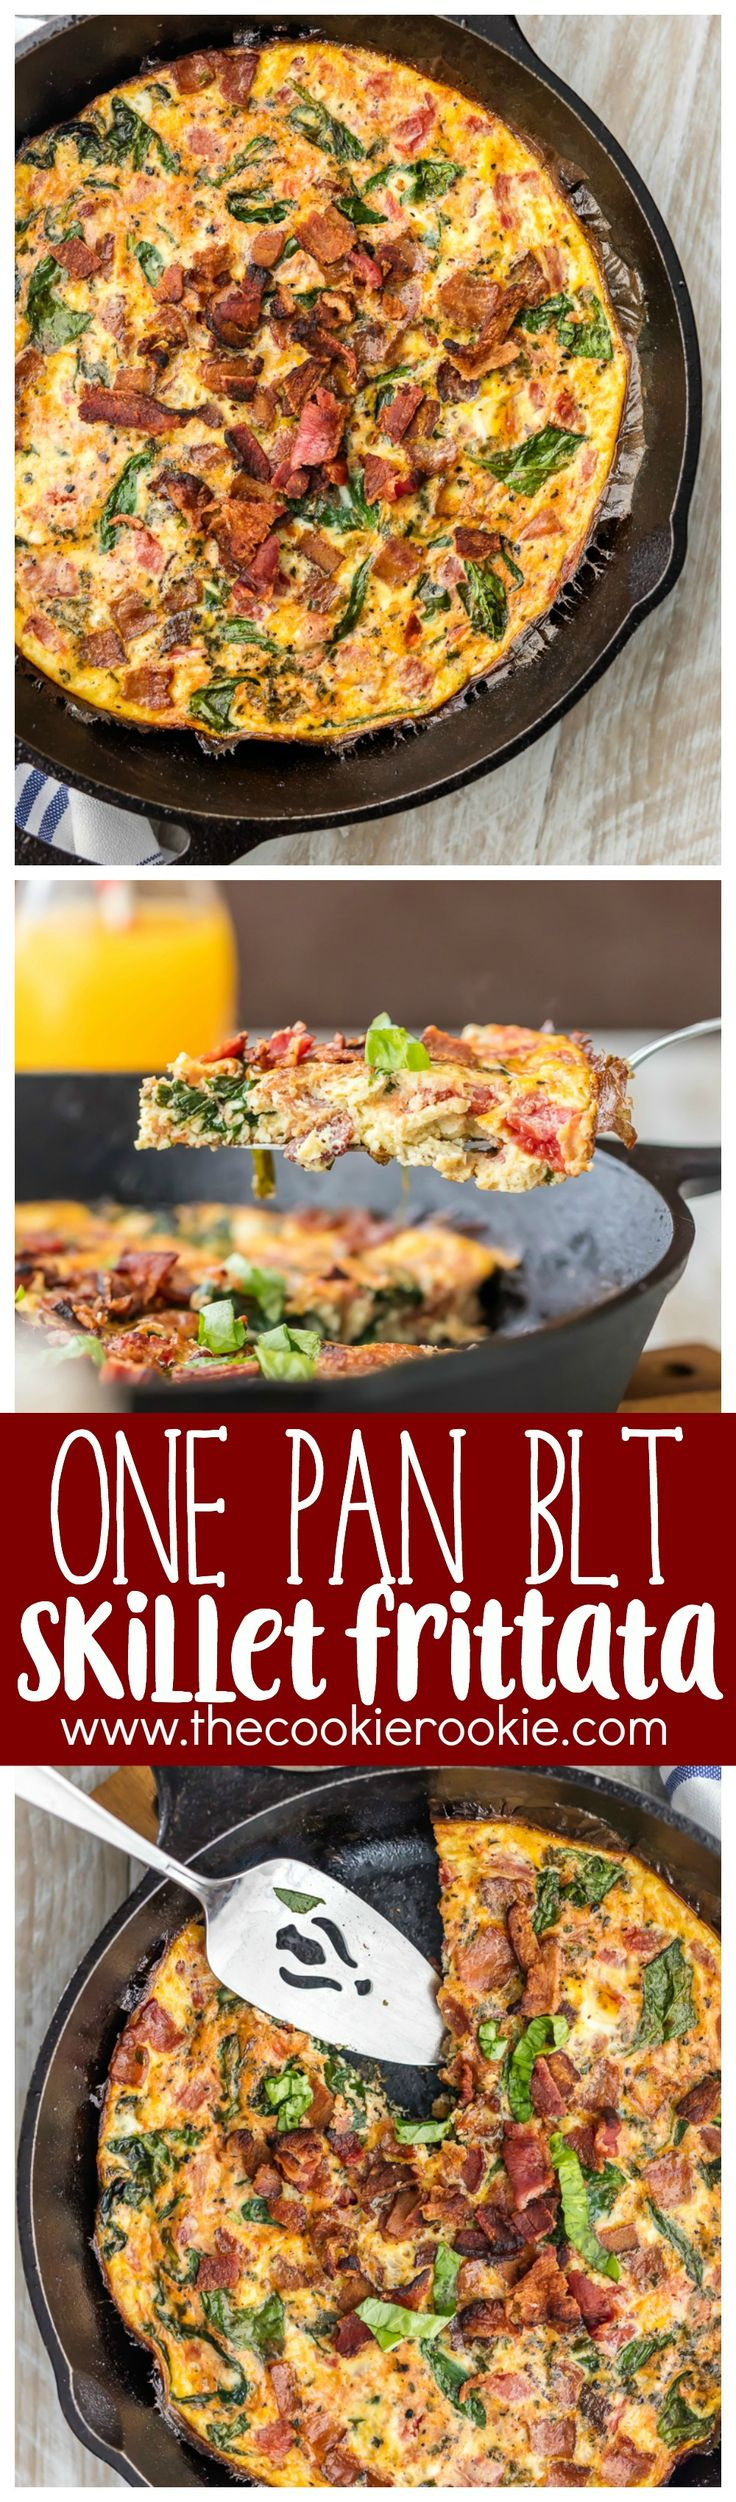 One Pan BLT Skillet Frittata - The Cookie Rookie